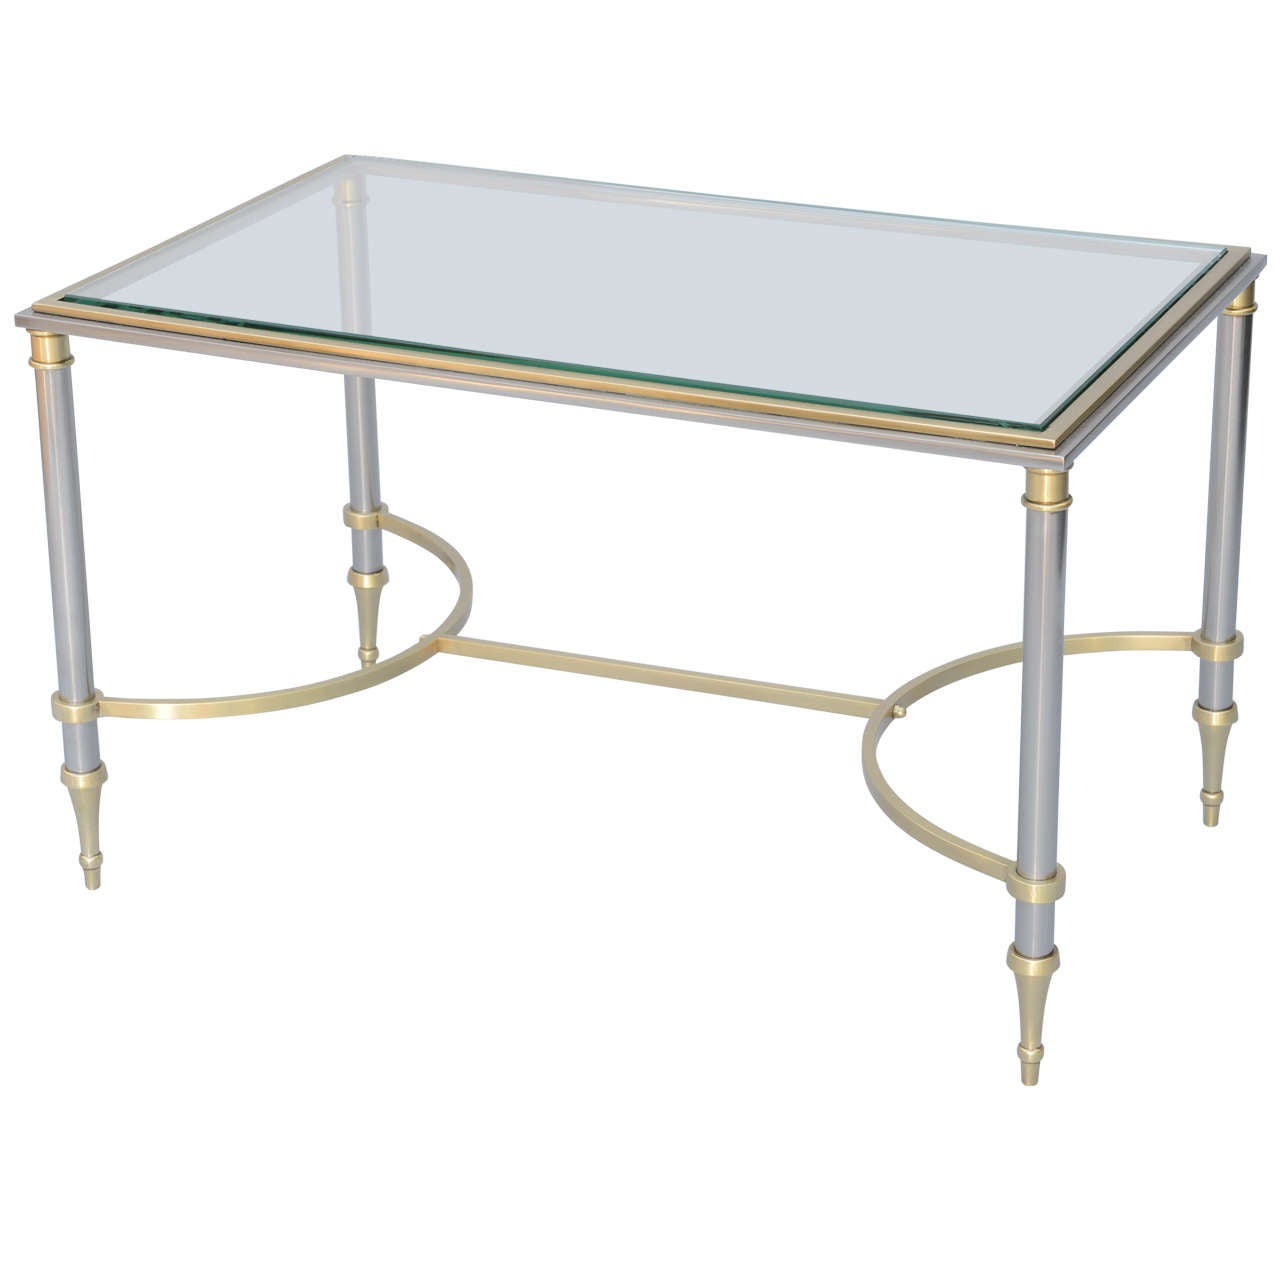 Jansen Polished Steel And Brass Cocktail Table At 1stdibs